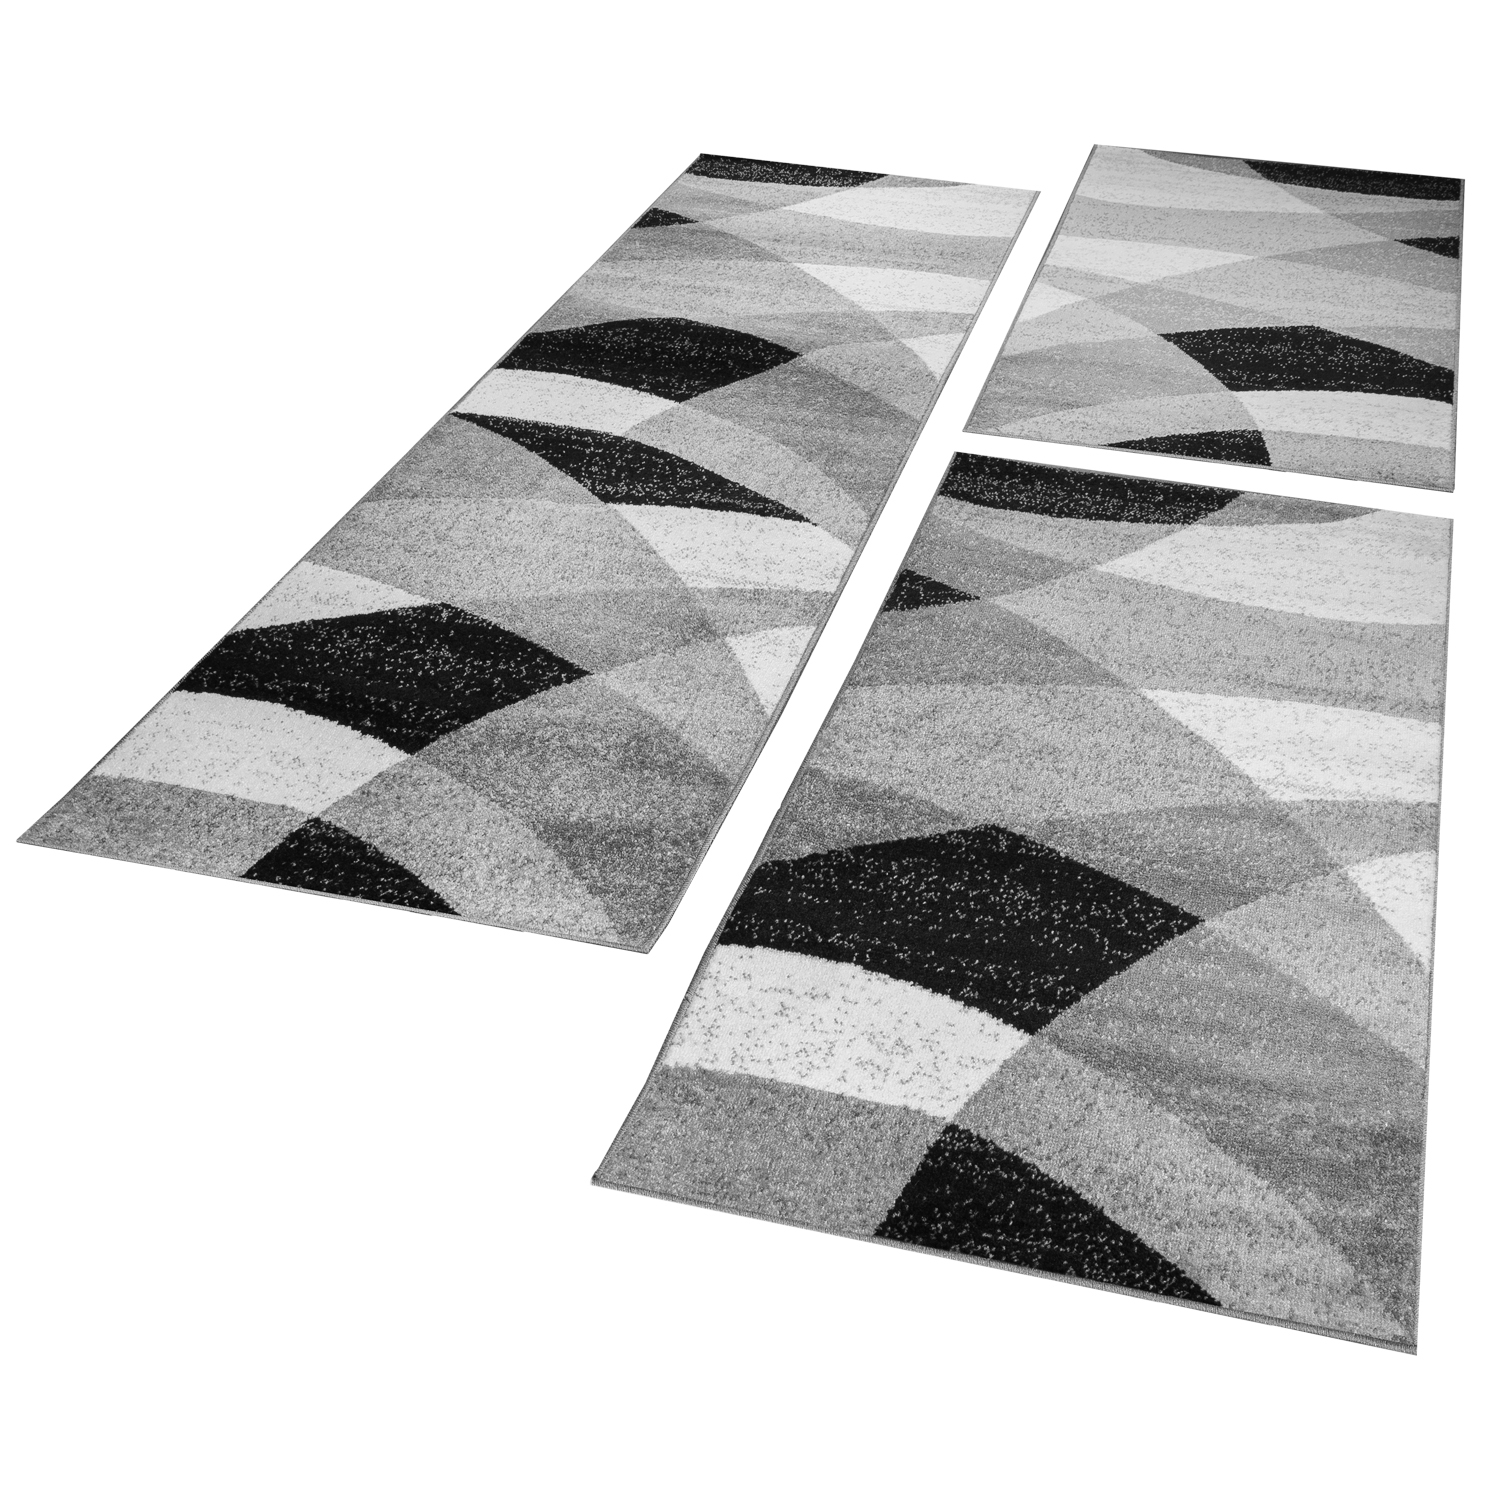 Bed Border Runner Rug Geometric Mottled Grey White Black Runner Set 3-Piece